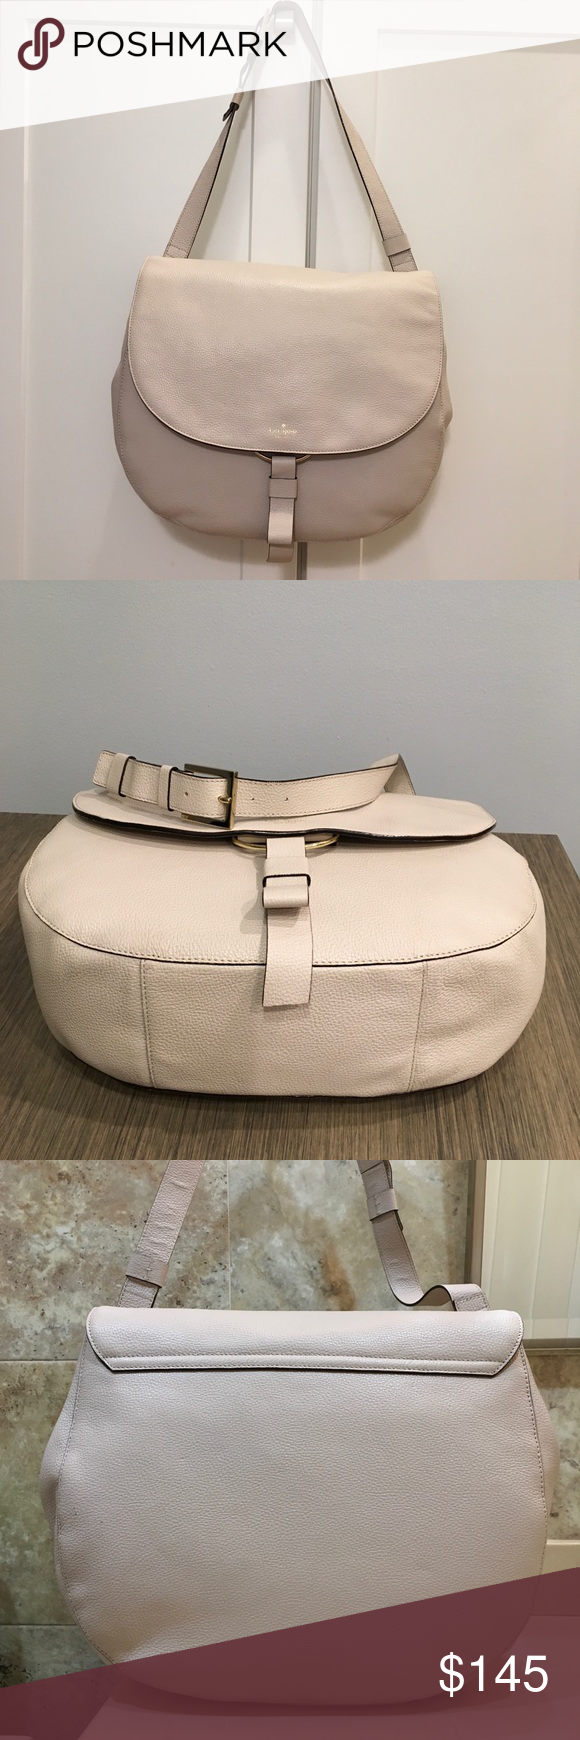 Kate Spade Hobo Kate Spade Large Hobo. Color Cream 15